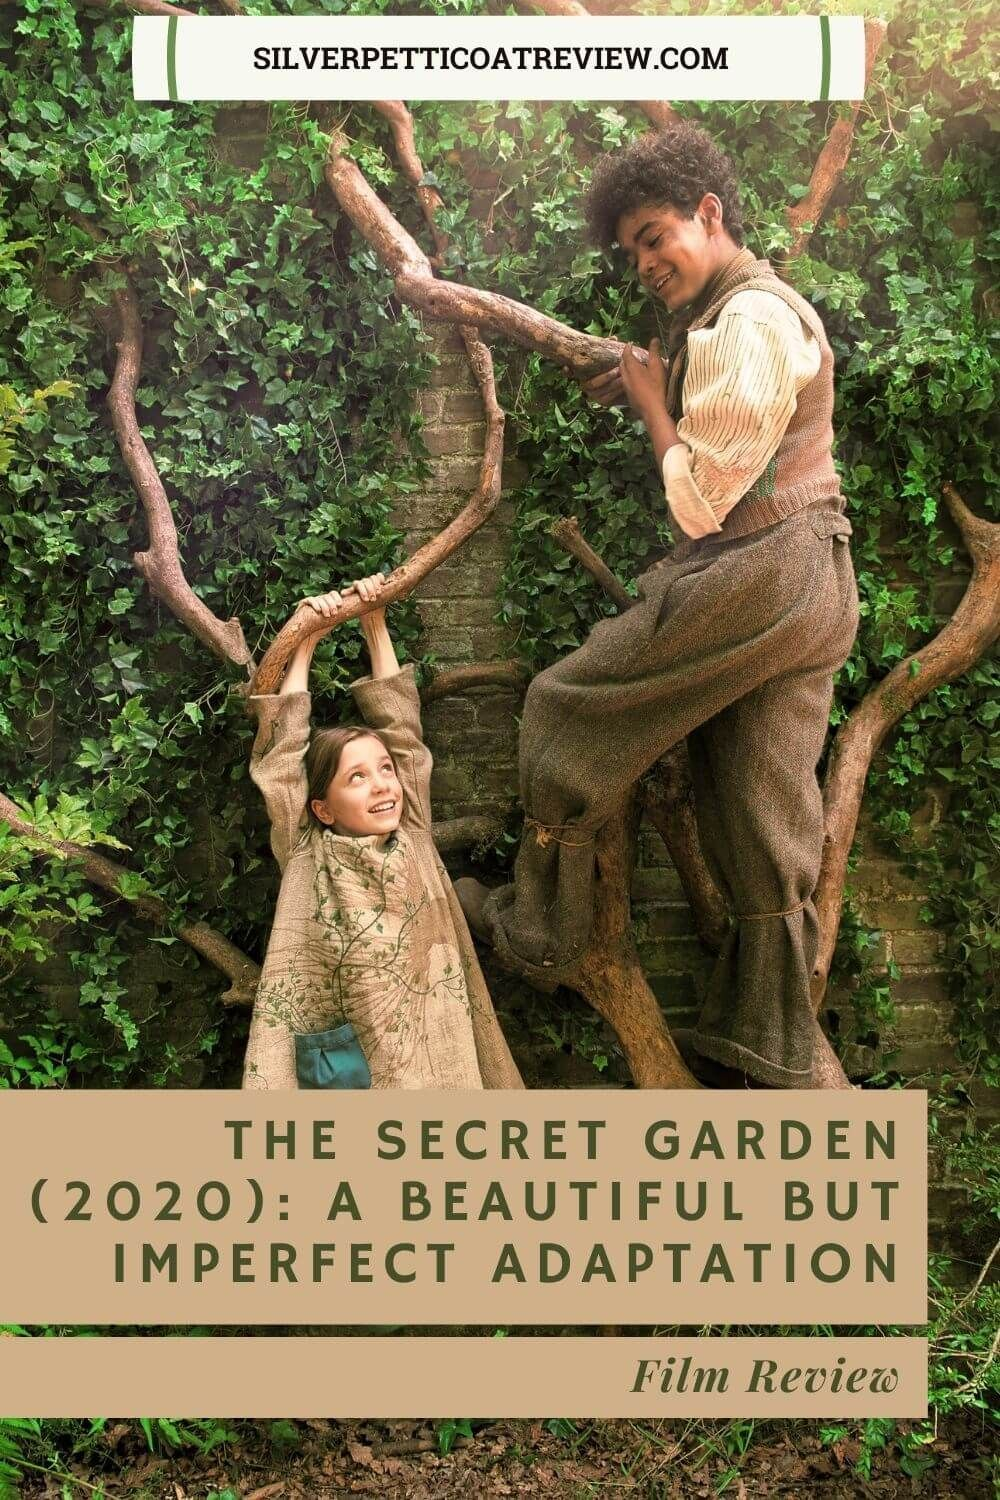 The Secret Garden (2020) Review A Beautiful But Imperfect